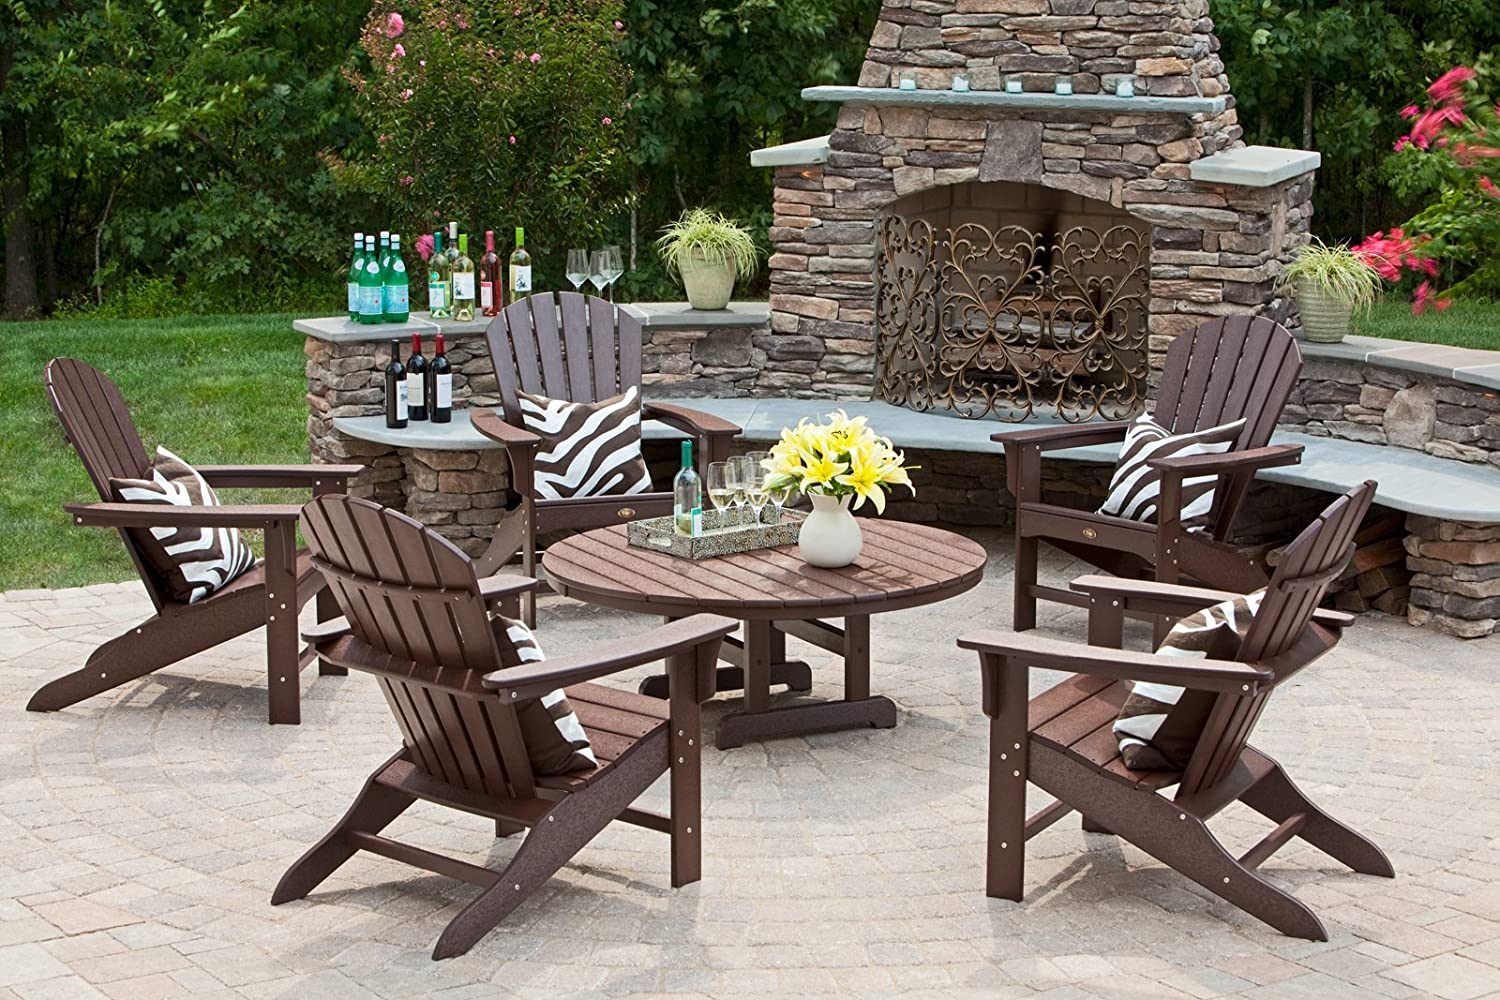 Amazon.com : Trex Outdoor Furniture Cape Cod Adirondack Chair, Stepping  Stone : Patio, Lawn U0026 Garden